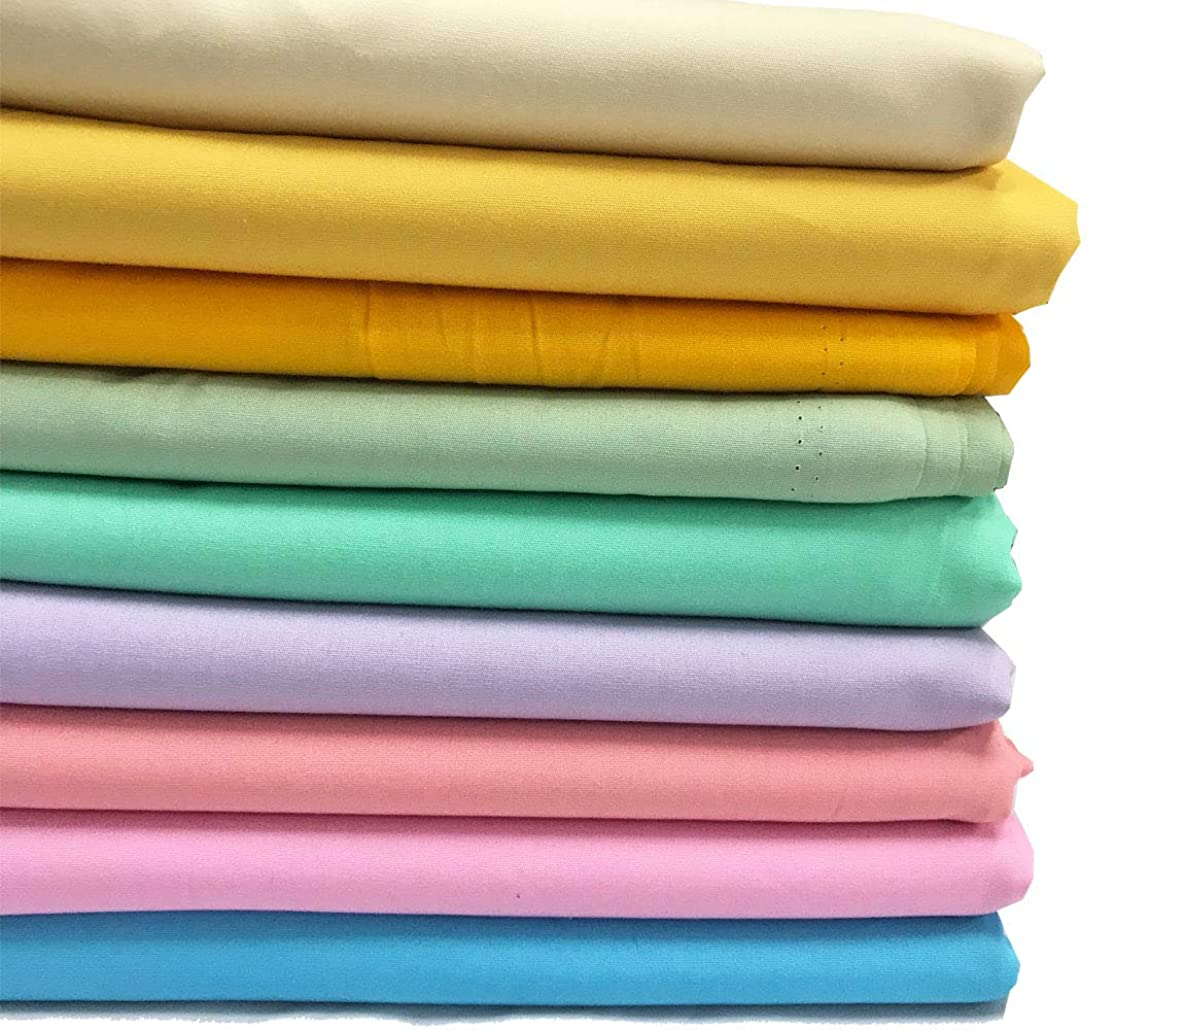 Amornphan 100% Sweet Solid Plain Pastel Colors Cotton Quilting Fabric for Patchwork Needlework DIY Handmade Sewing Crafting Precut 18''x22'' Set of 9 PCS